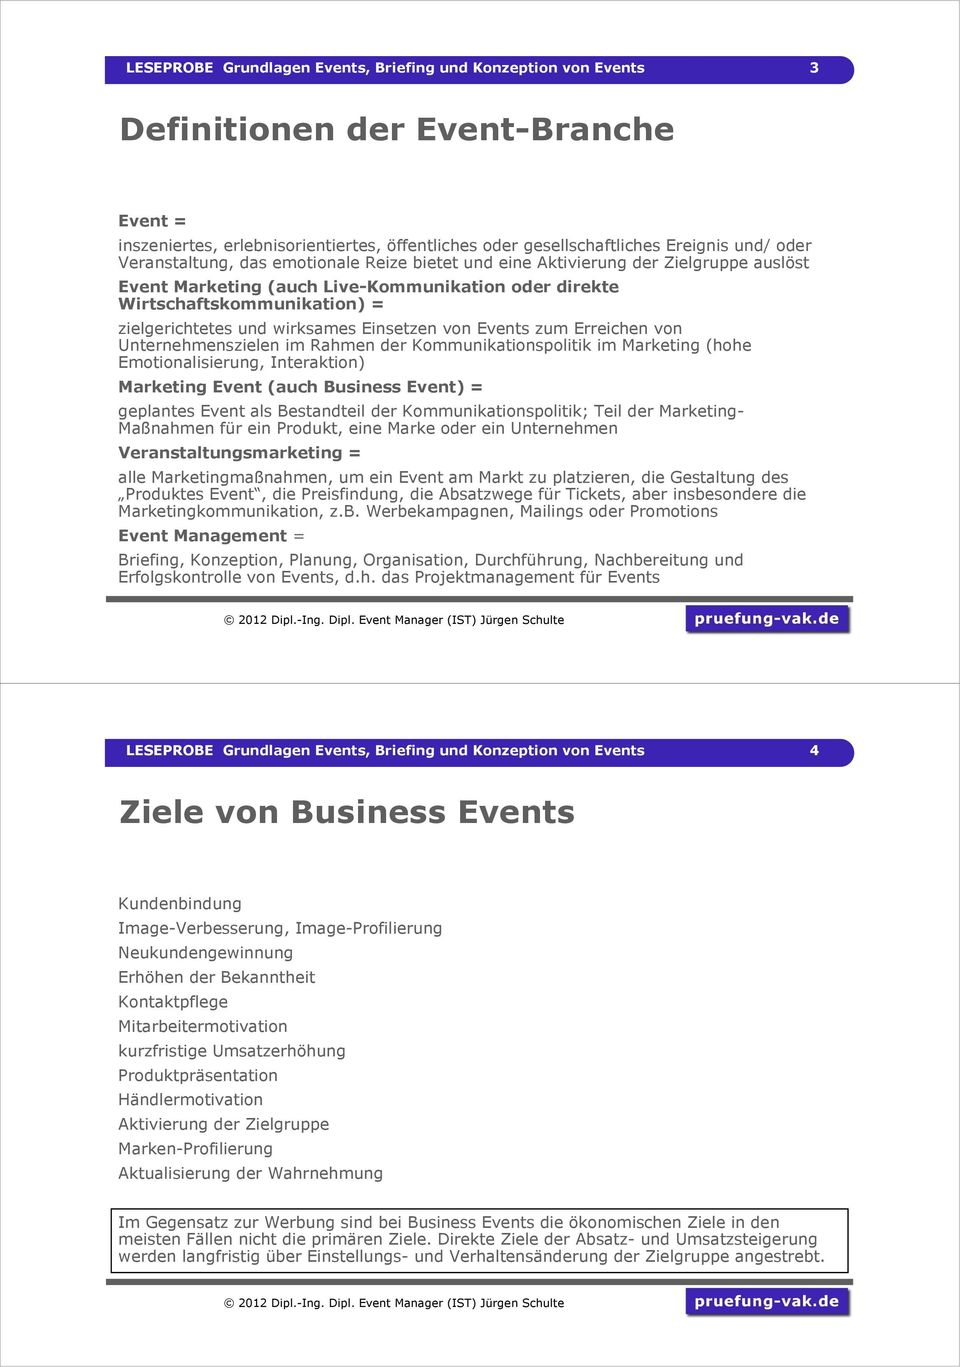 Einsetzen von Events zum Erreichen von Unternehmenszielen im Rahmen der Kommunikationspolitik im Marketing (hohe Emotionalisierung, Interaktion) Marketing Event (auch Business Event) = geplantes